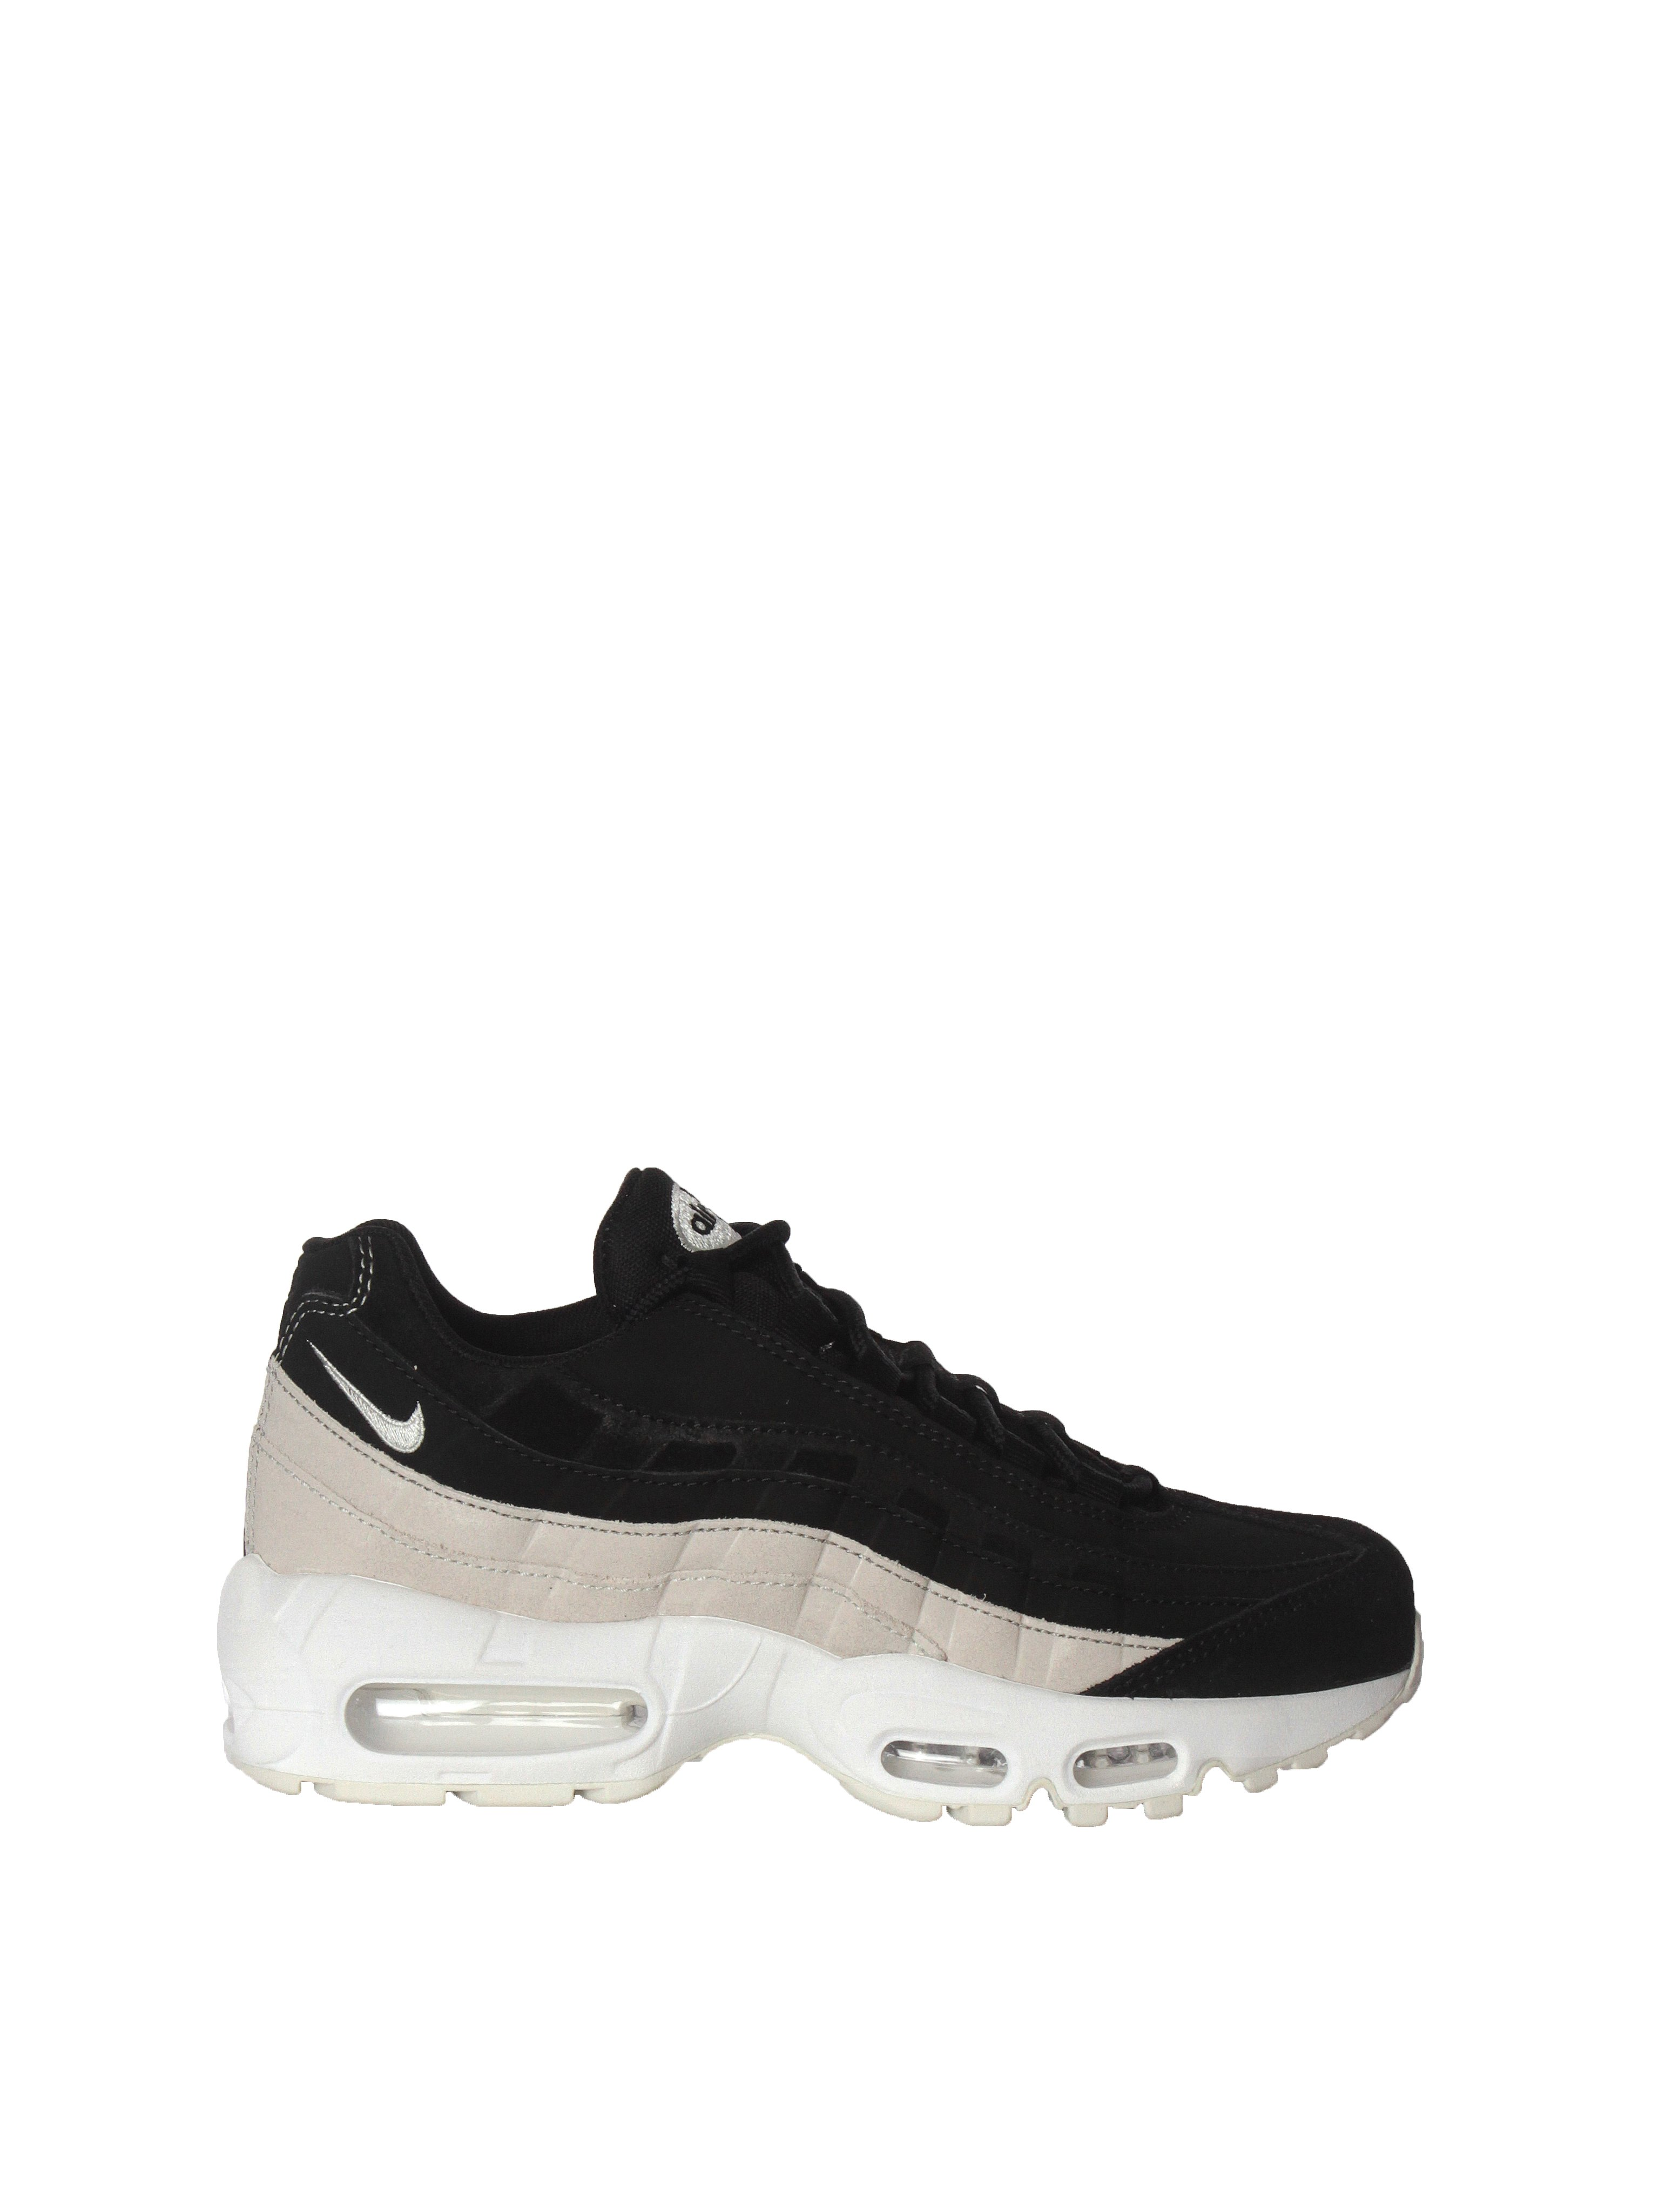 Nike Air Max 95 PRM Shoes Black Spruce Aura White